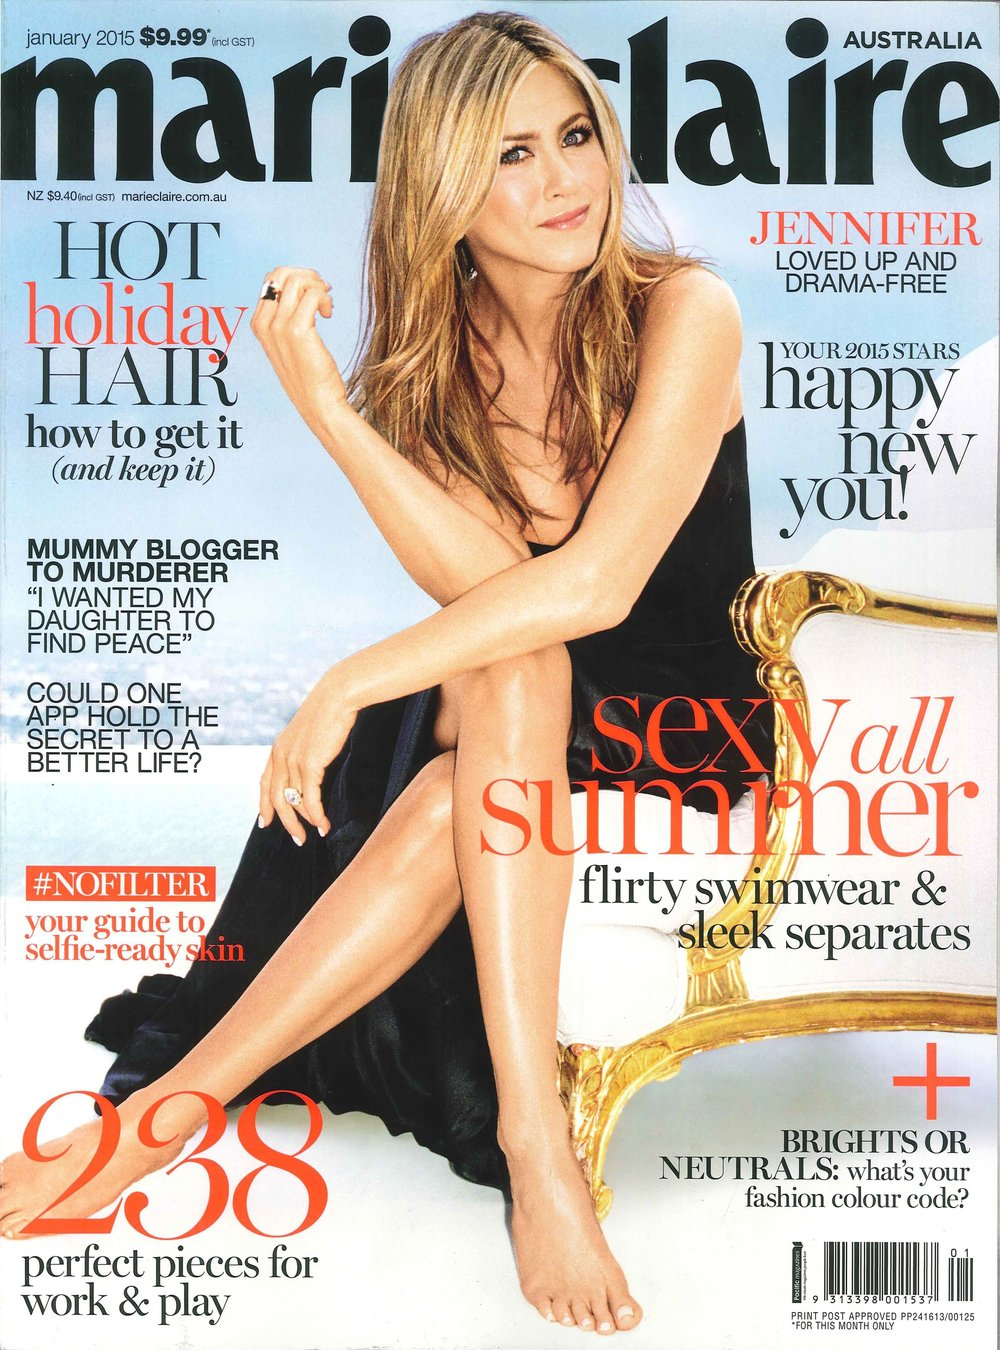 2015 - Marie Claire Australia January 2015 Issue.jpg